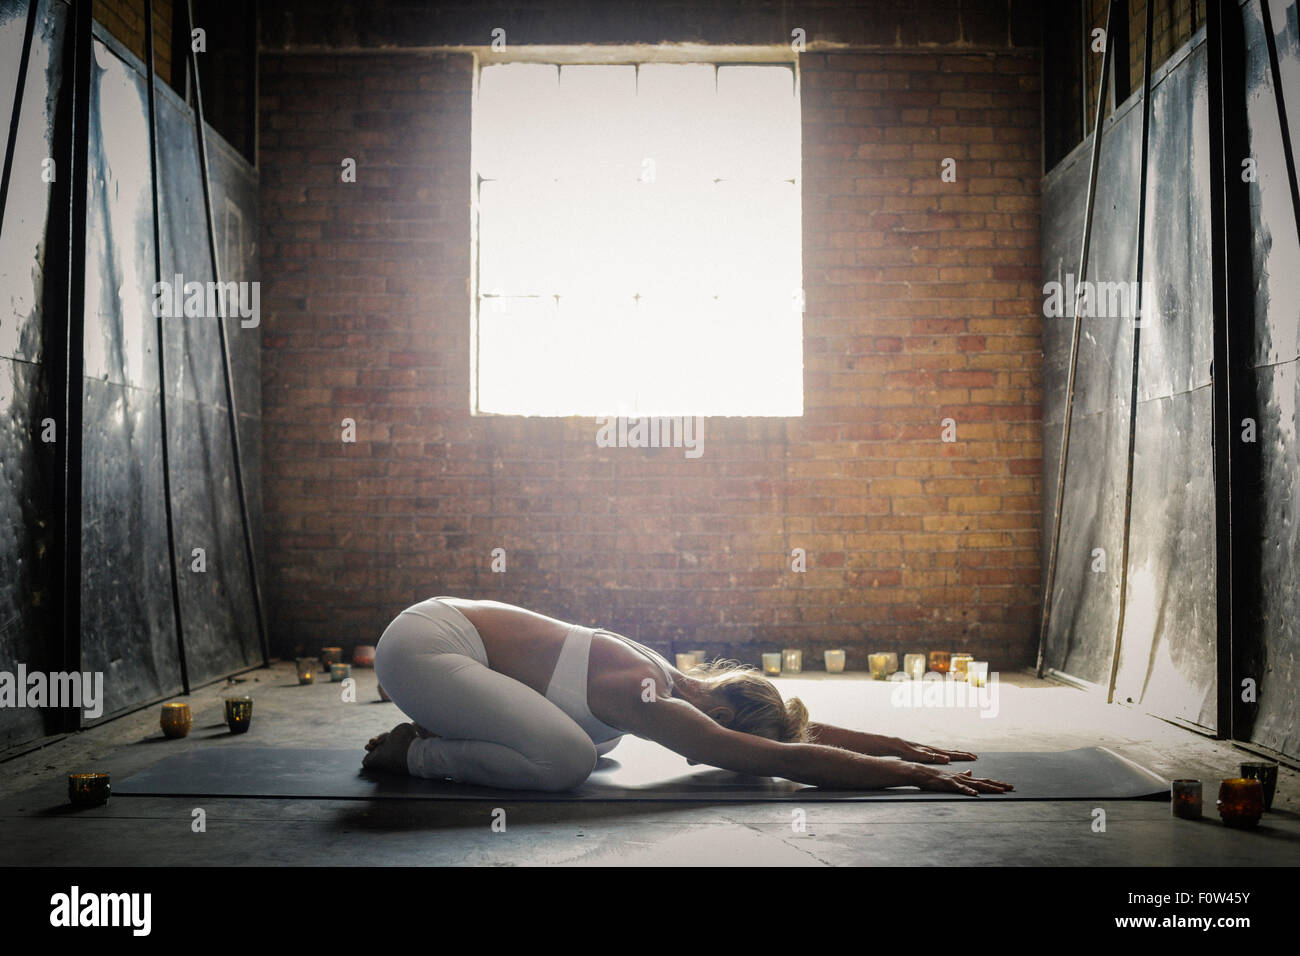 A blonde woman, in a white crop top and leggings,lying on a yoga mat on the floor surrounded by candles, arms outstretched - Stock Image